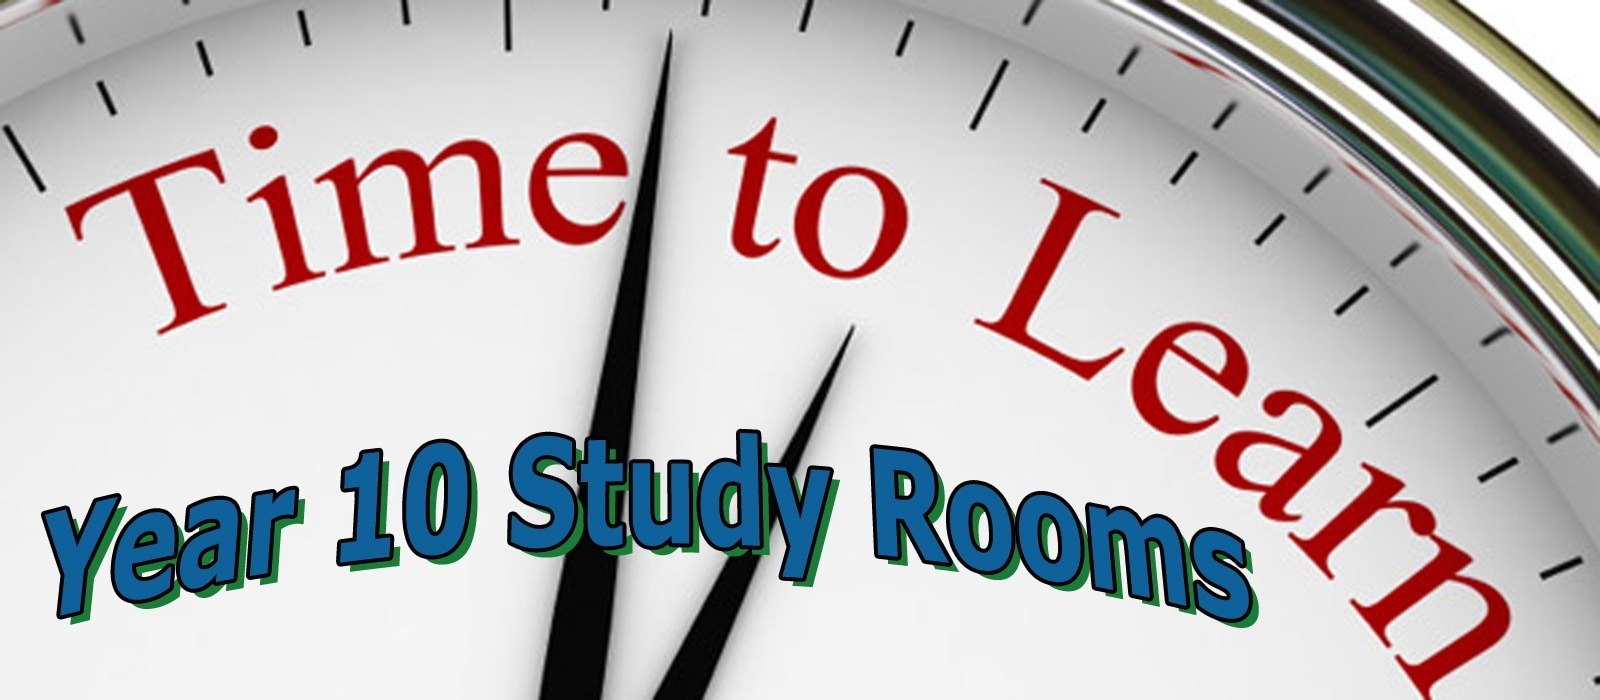 Supporting image for Year 10 Study Rooms